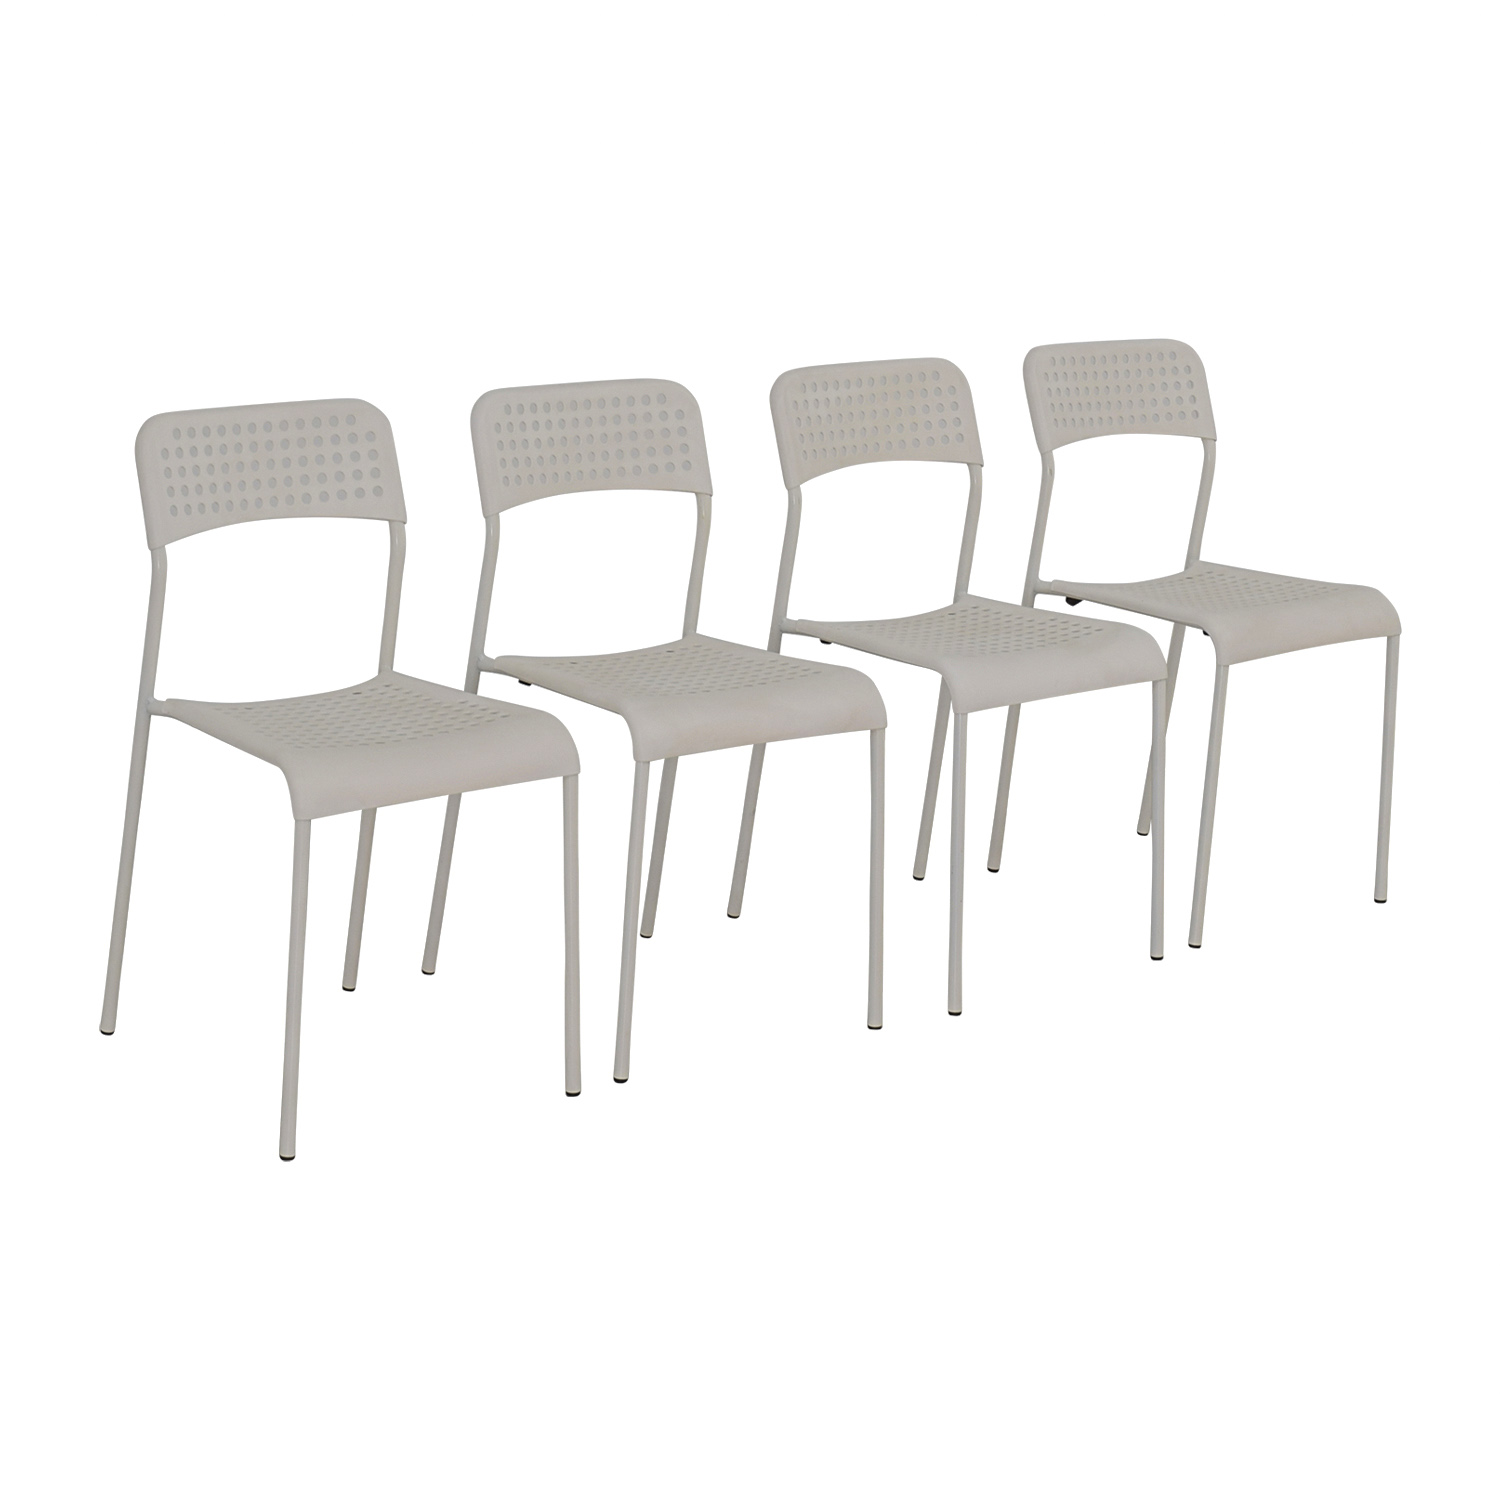 69 off ikea ikea white chairs chairs - Ikea white dining chairs ...